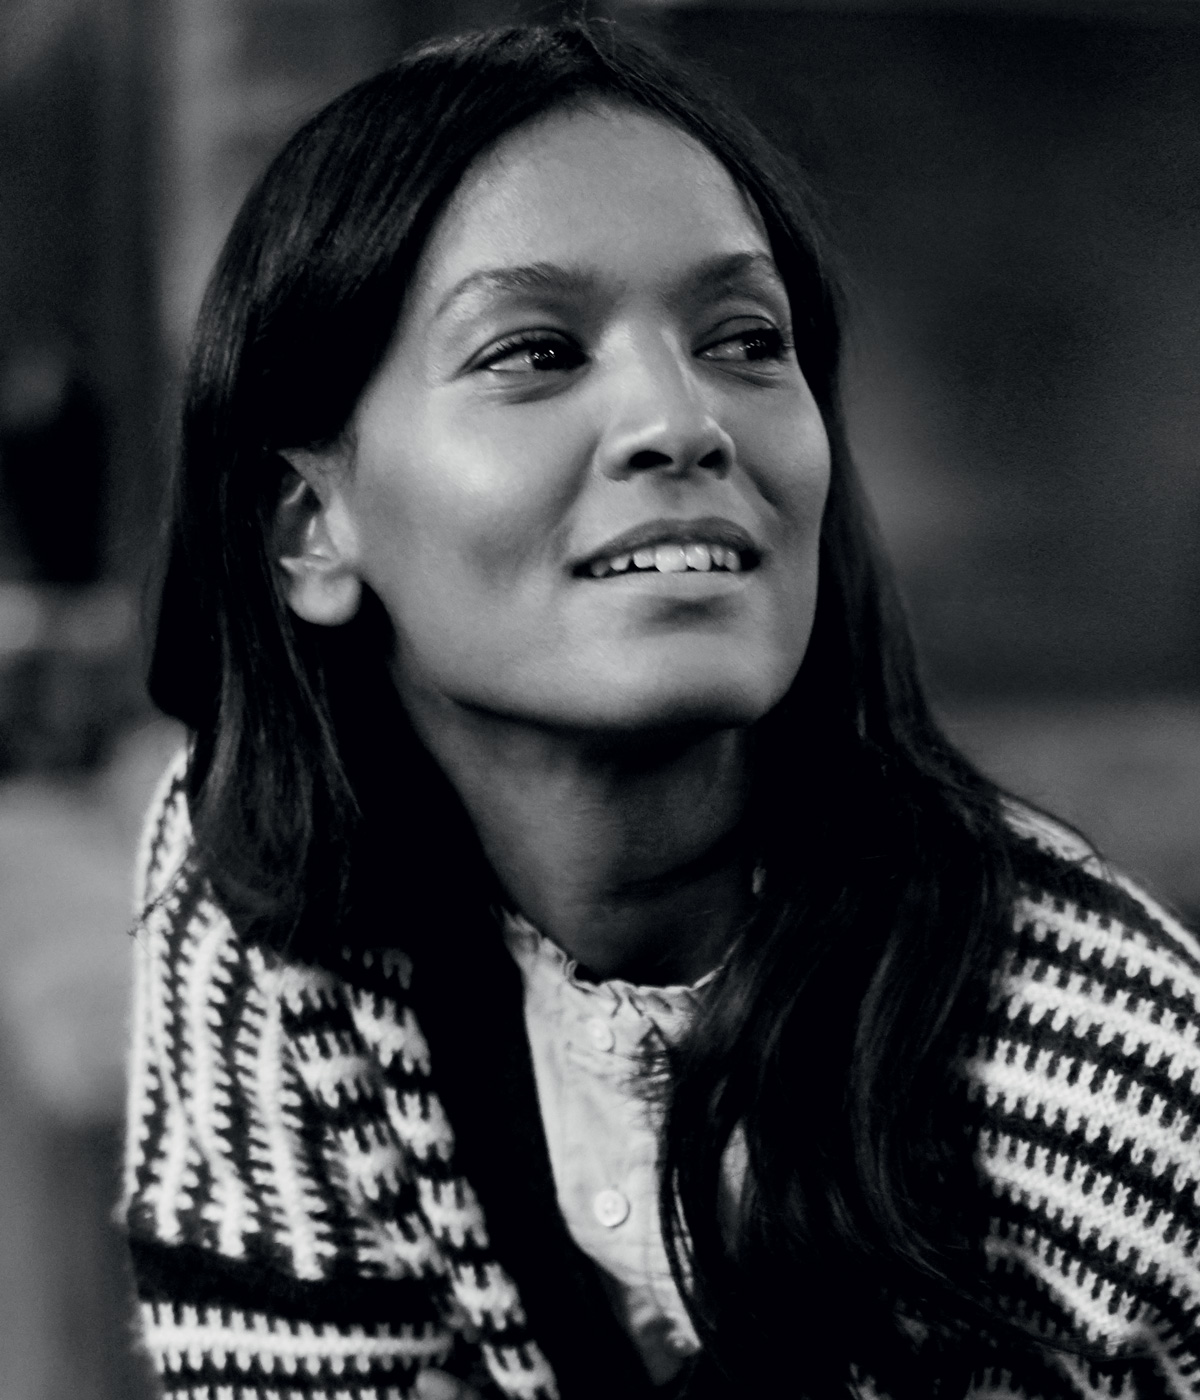 liya kebede on judging the wallpaper design awards 2018